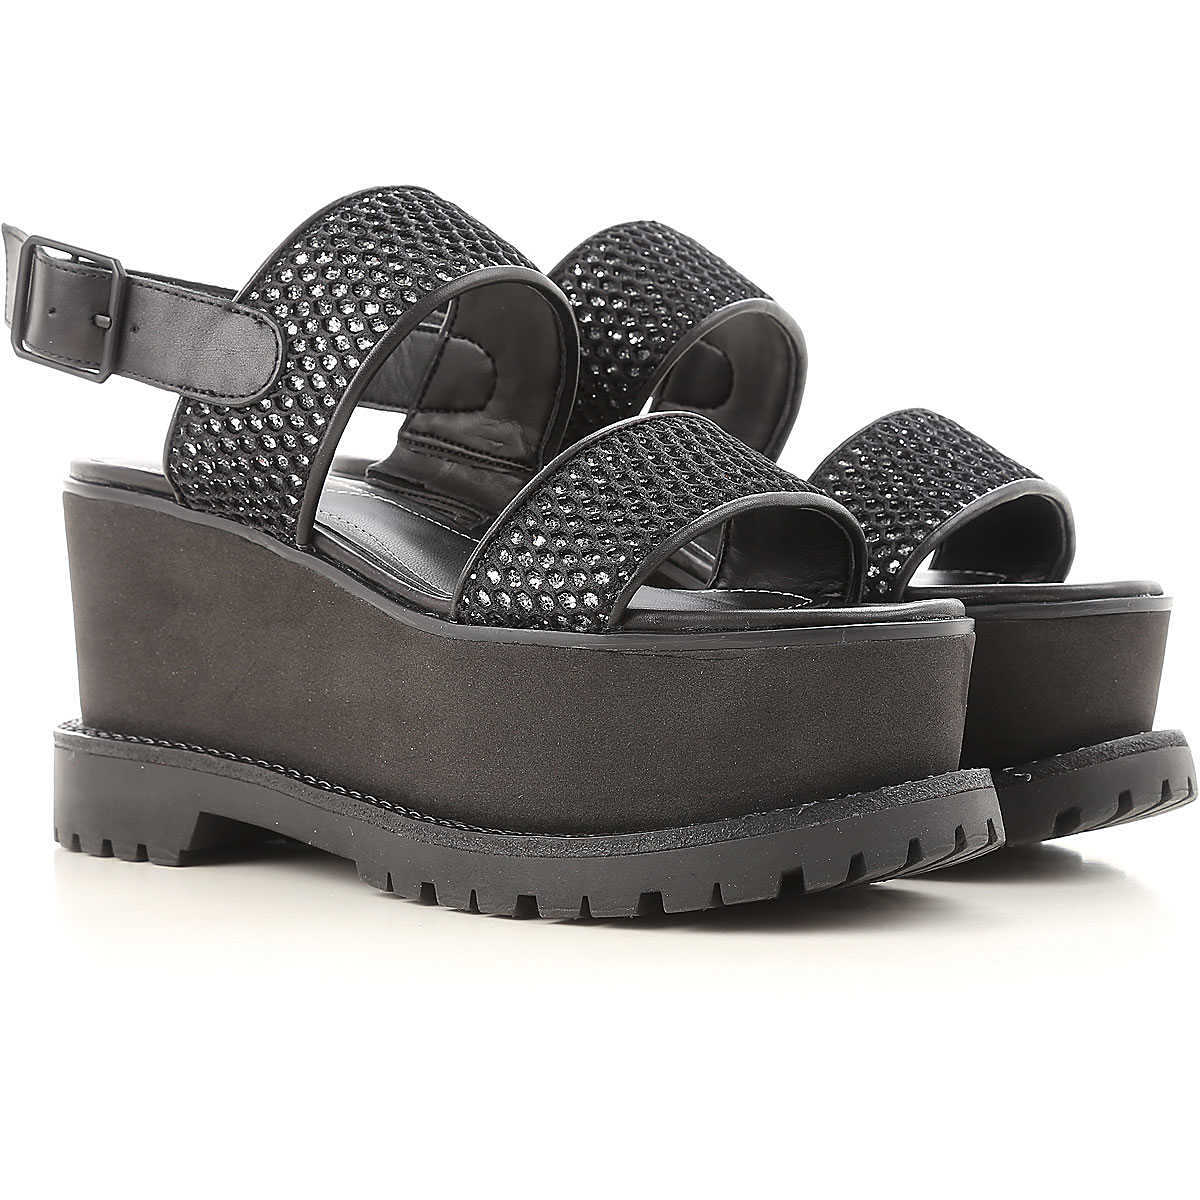 Kendall Kylie Wedges for Women On Sale in Outlet Black DK - GOOFASH - Womens HOUSE SHOES